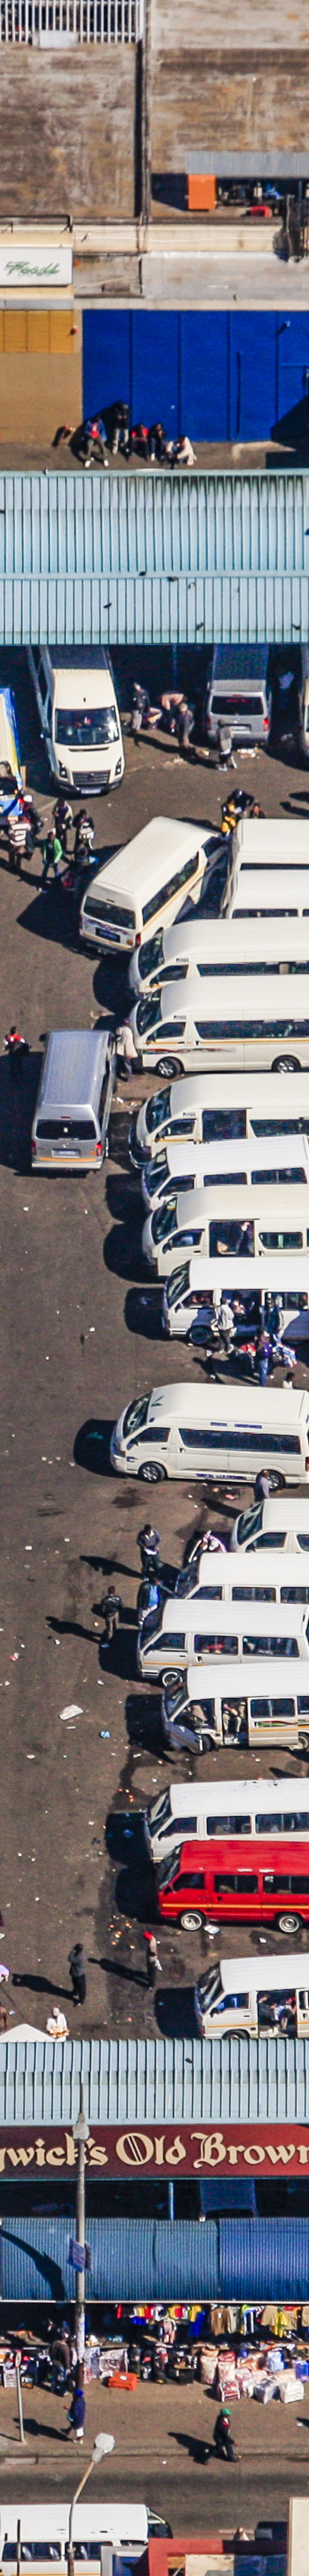 Aerial view from the bus station at the park station in Johannesburg city center in South Africa - Klaus Leidorf Aerial Photography